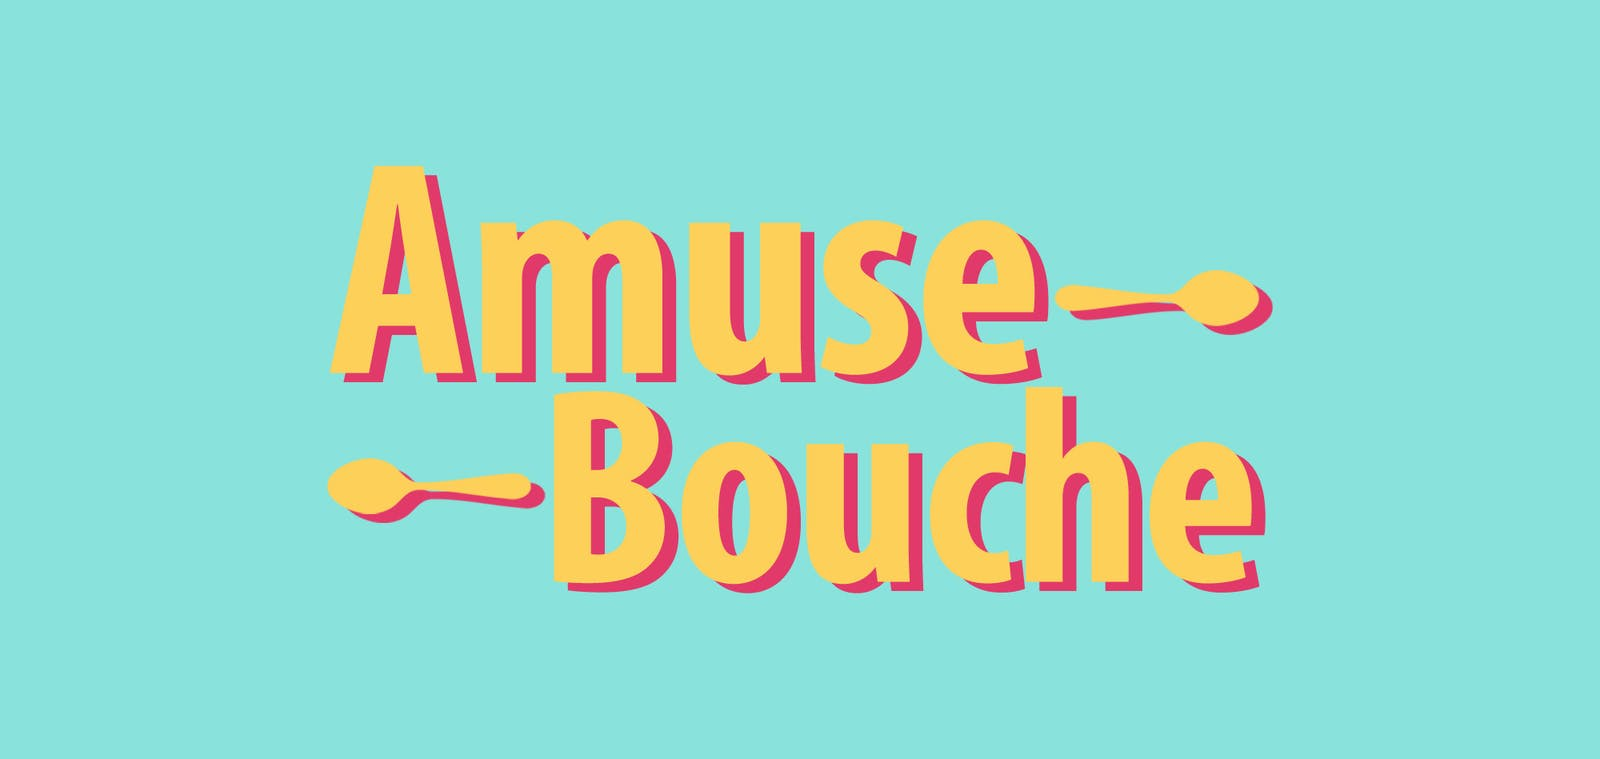 Subscribe to the Amuse-Bouche newsletter!